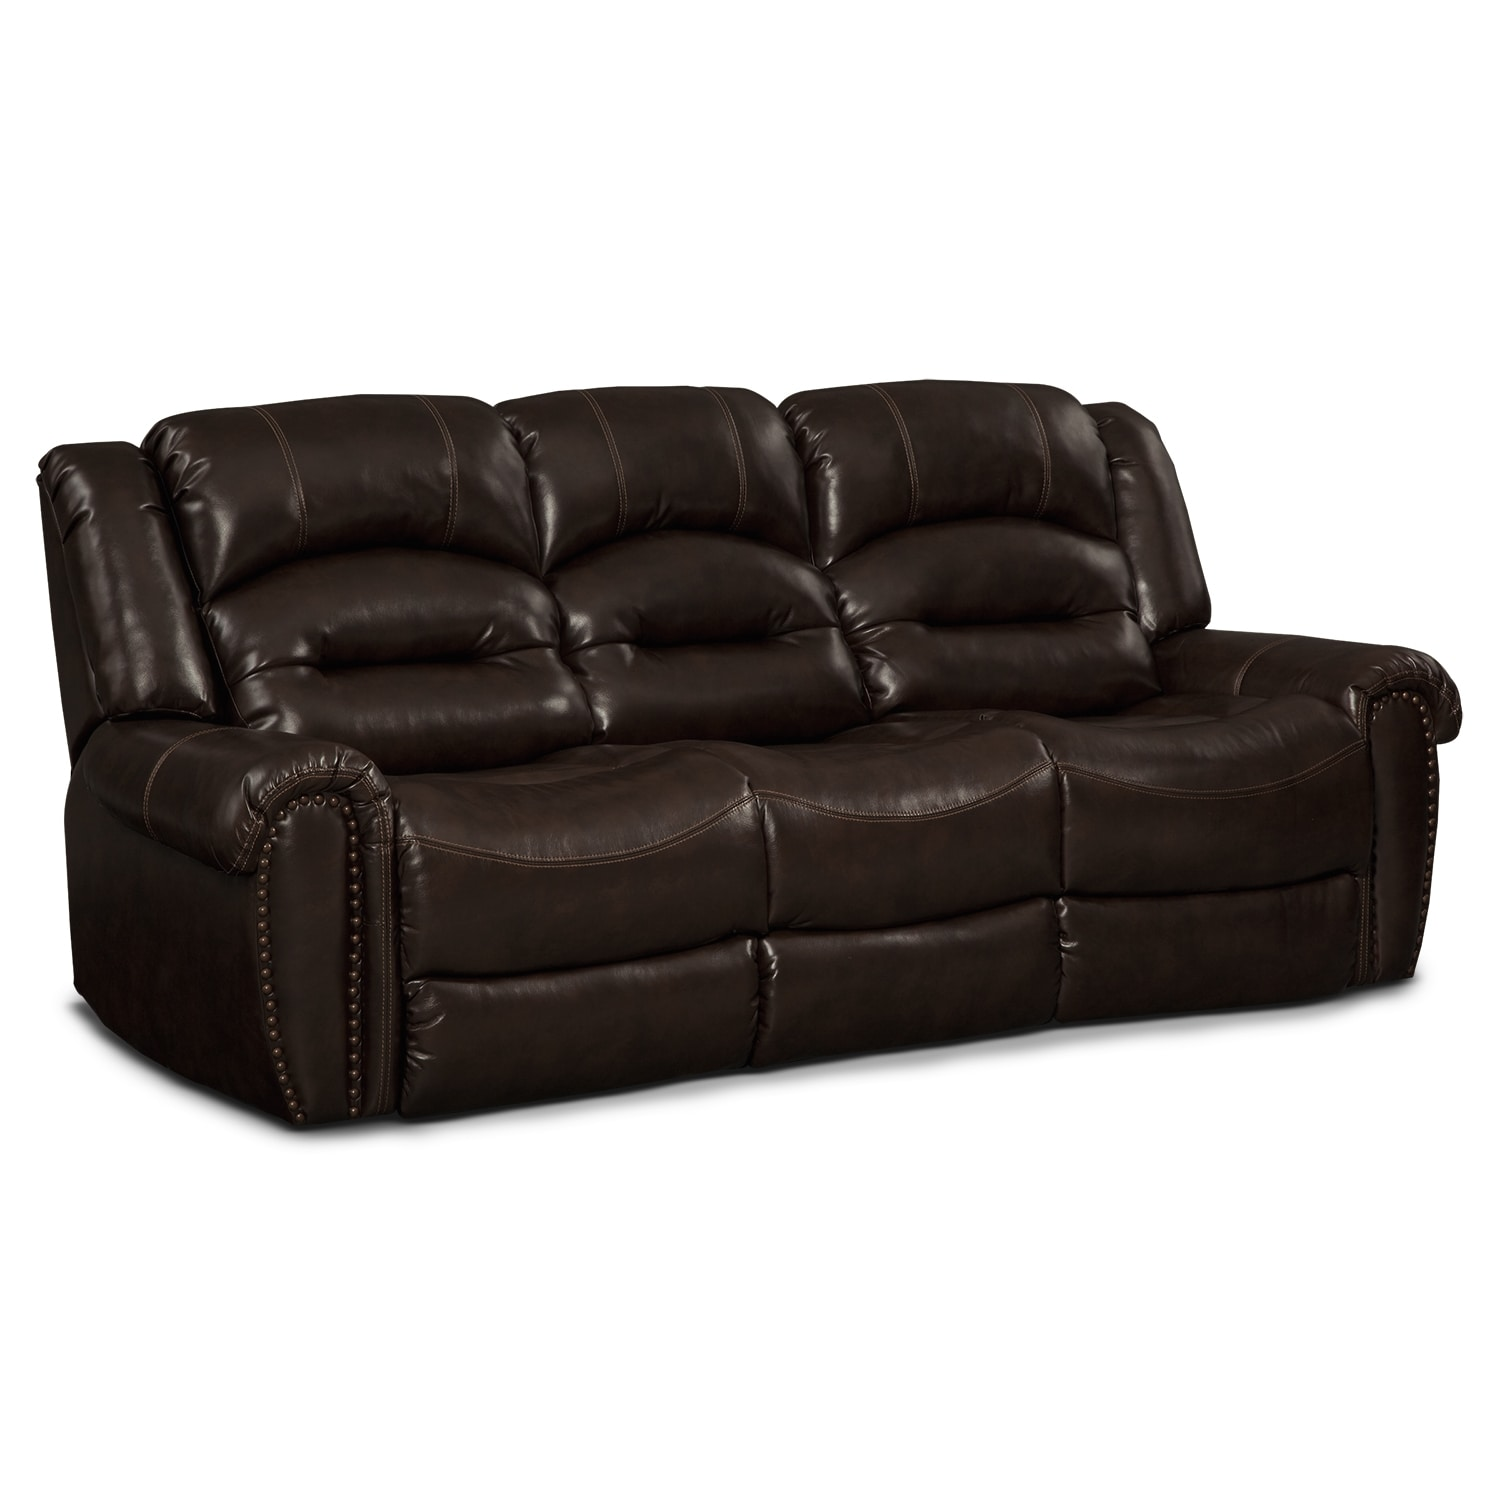 Galveston leather dual reclining sofa value city furniture Reclining leather sofa and loveseat